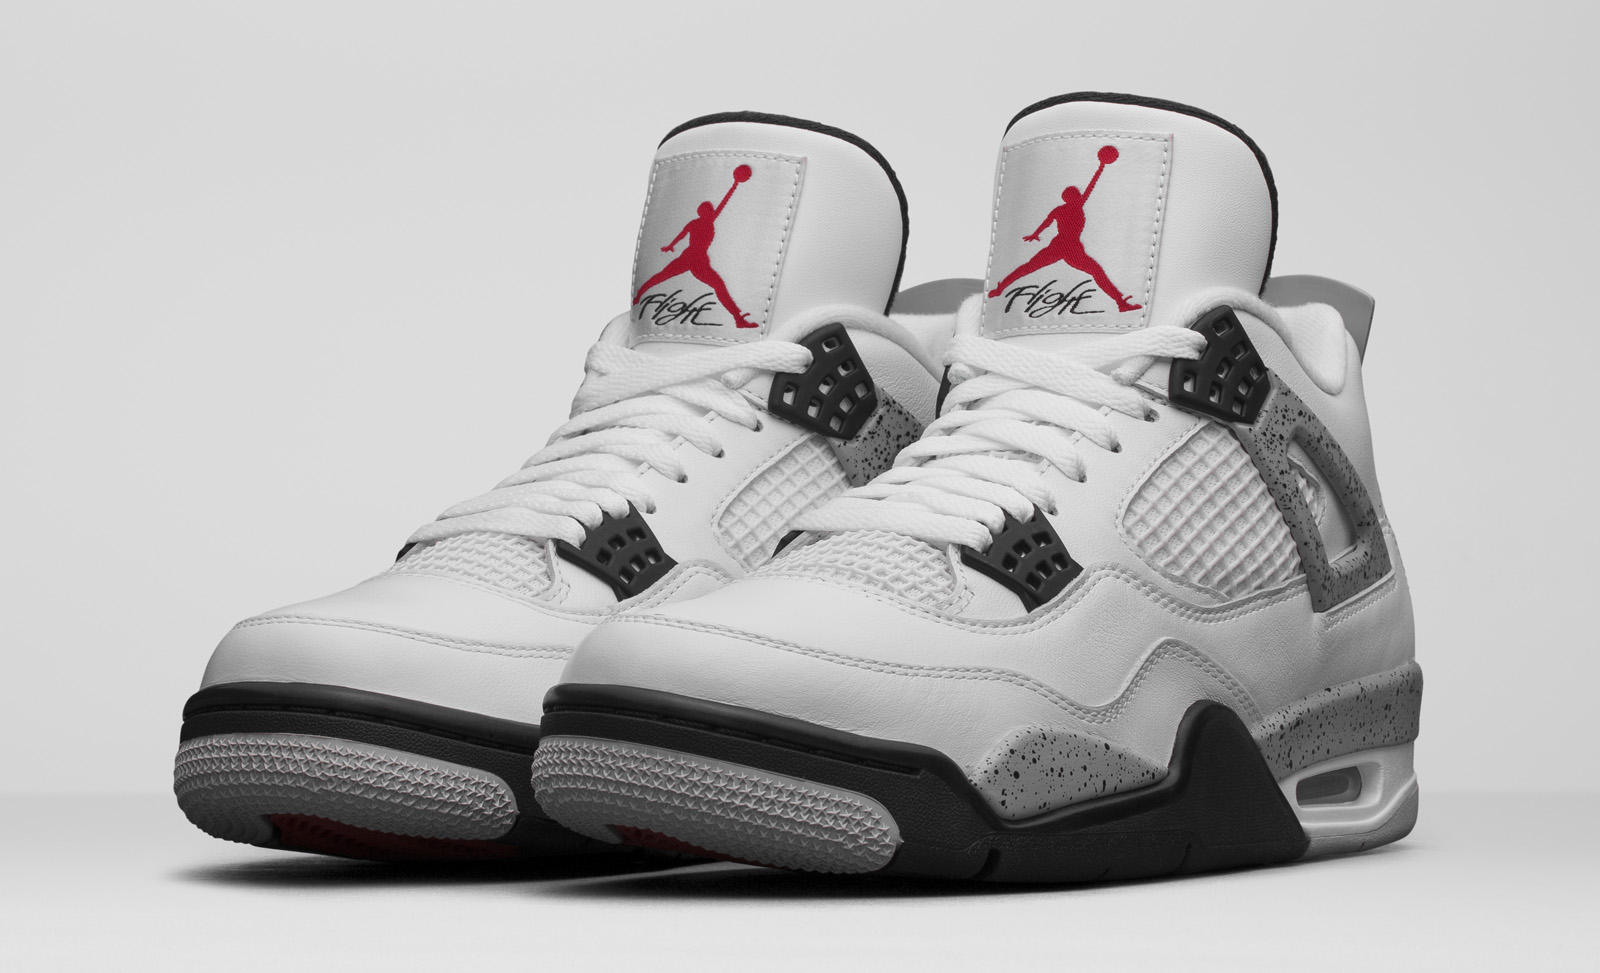 5d7297f2e70 cement Archives - Air 23 - Air Jordan Release Dates